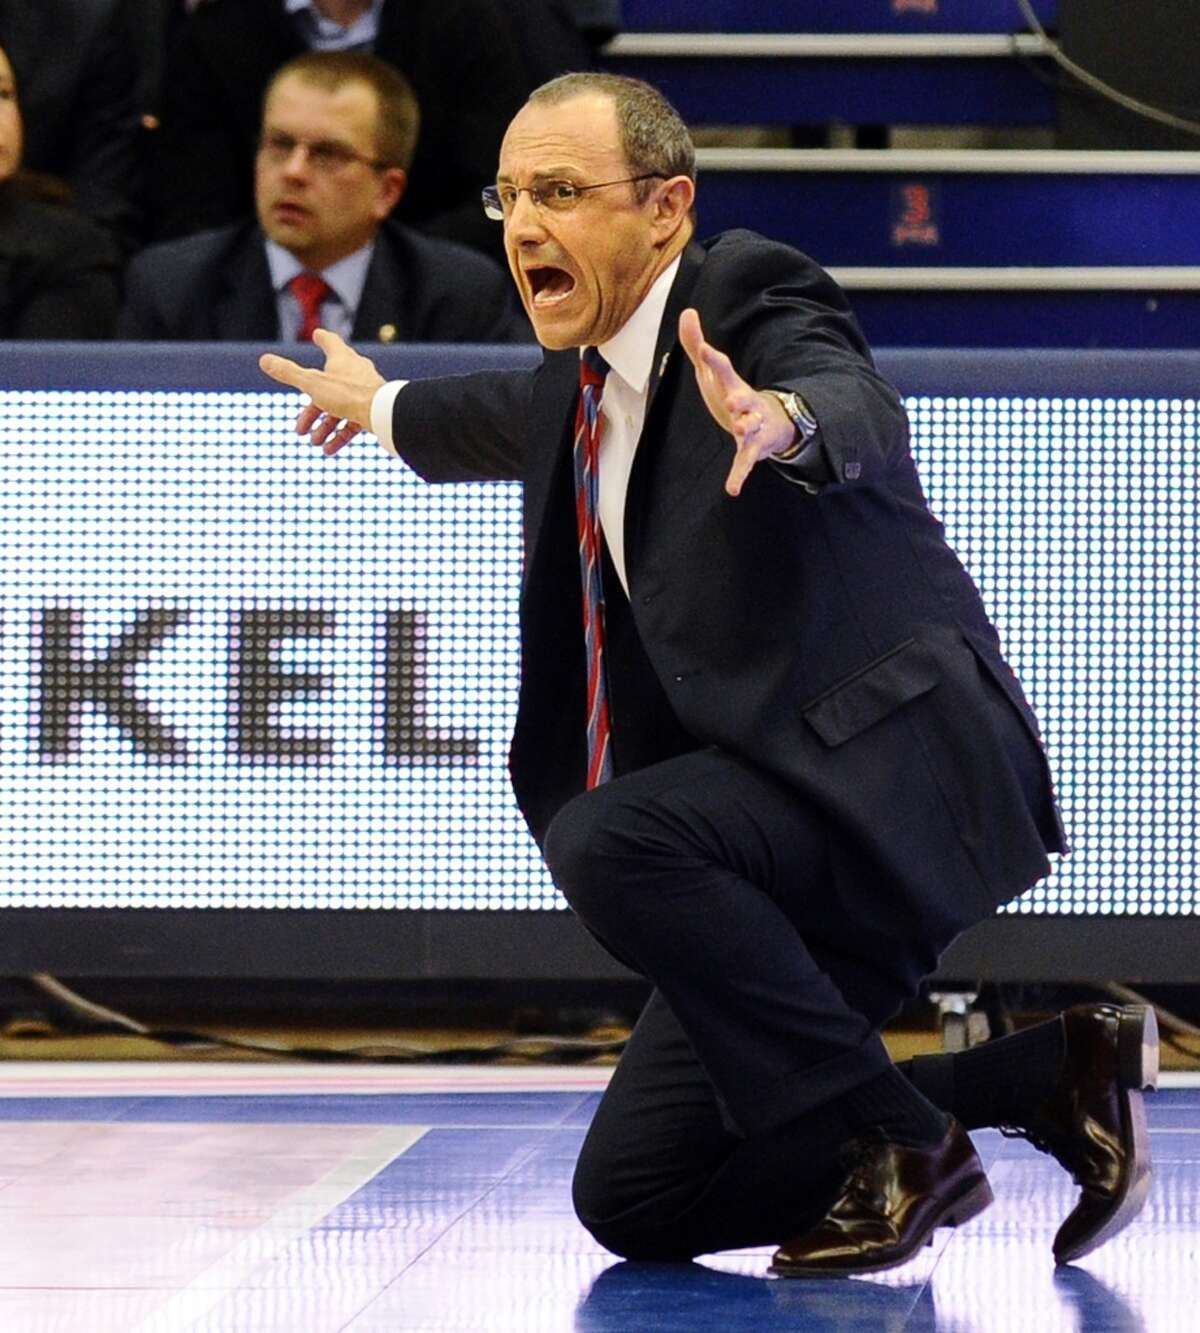 Ettore Messina, while coach of CSKA Moscow, reacts during the Euroleague Top 16 basketball match against Real Madrid in Moscow on March 28, 2013.